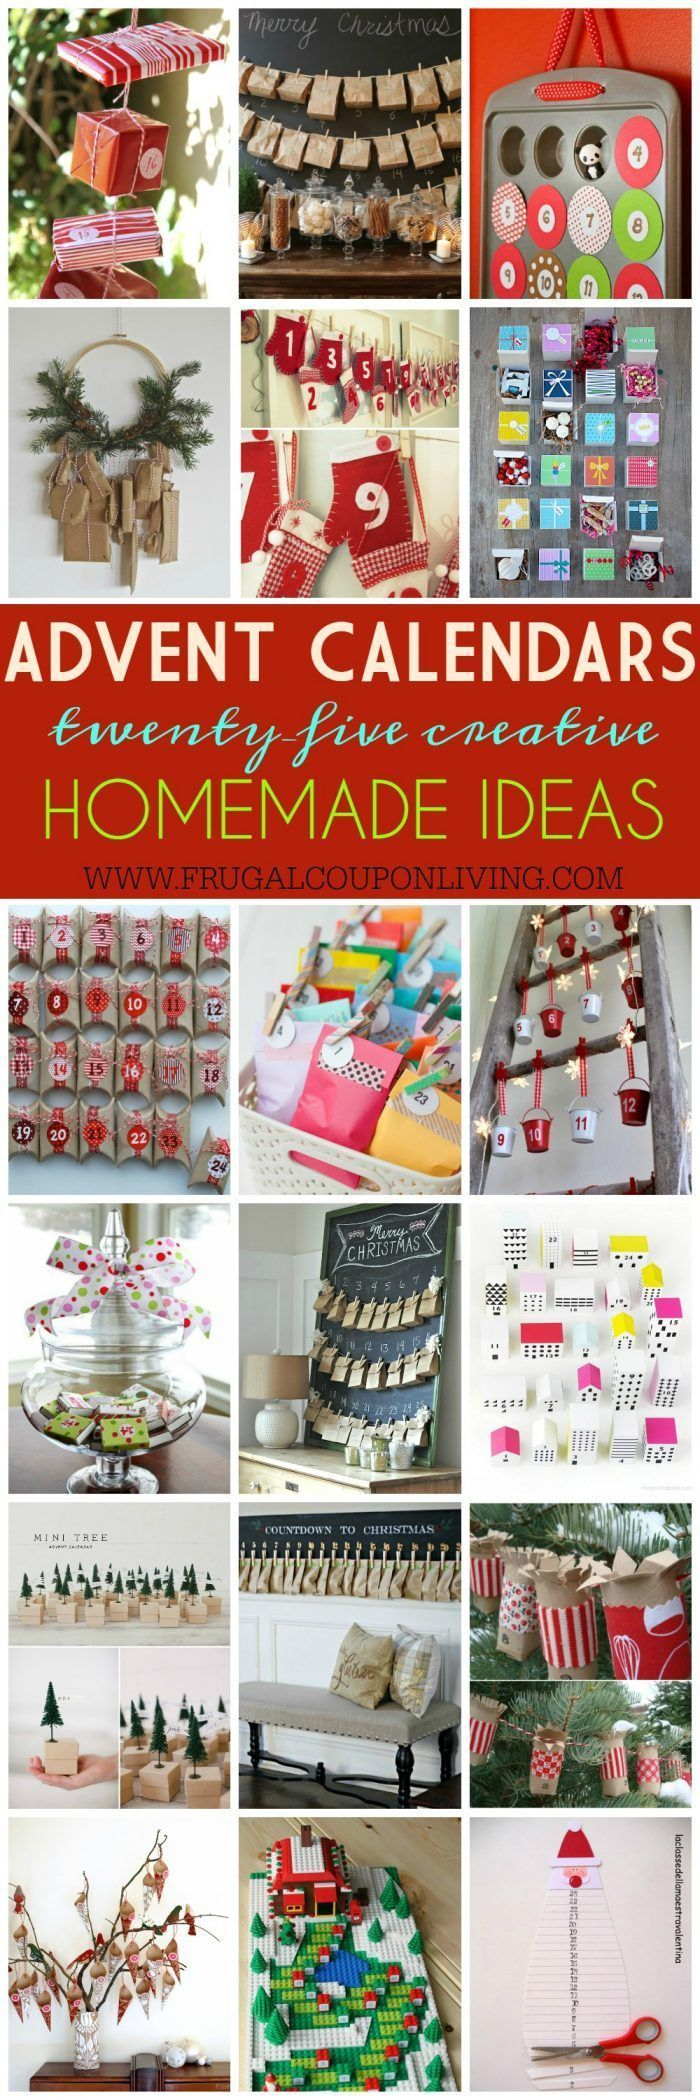 Ideas For Kid Friendly Homemade Advent Calendars